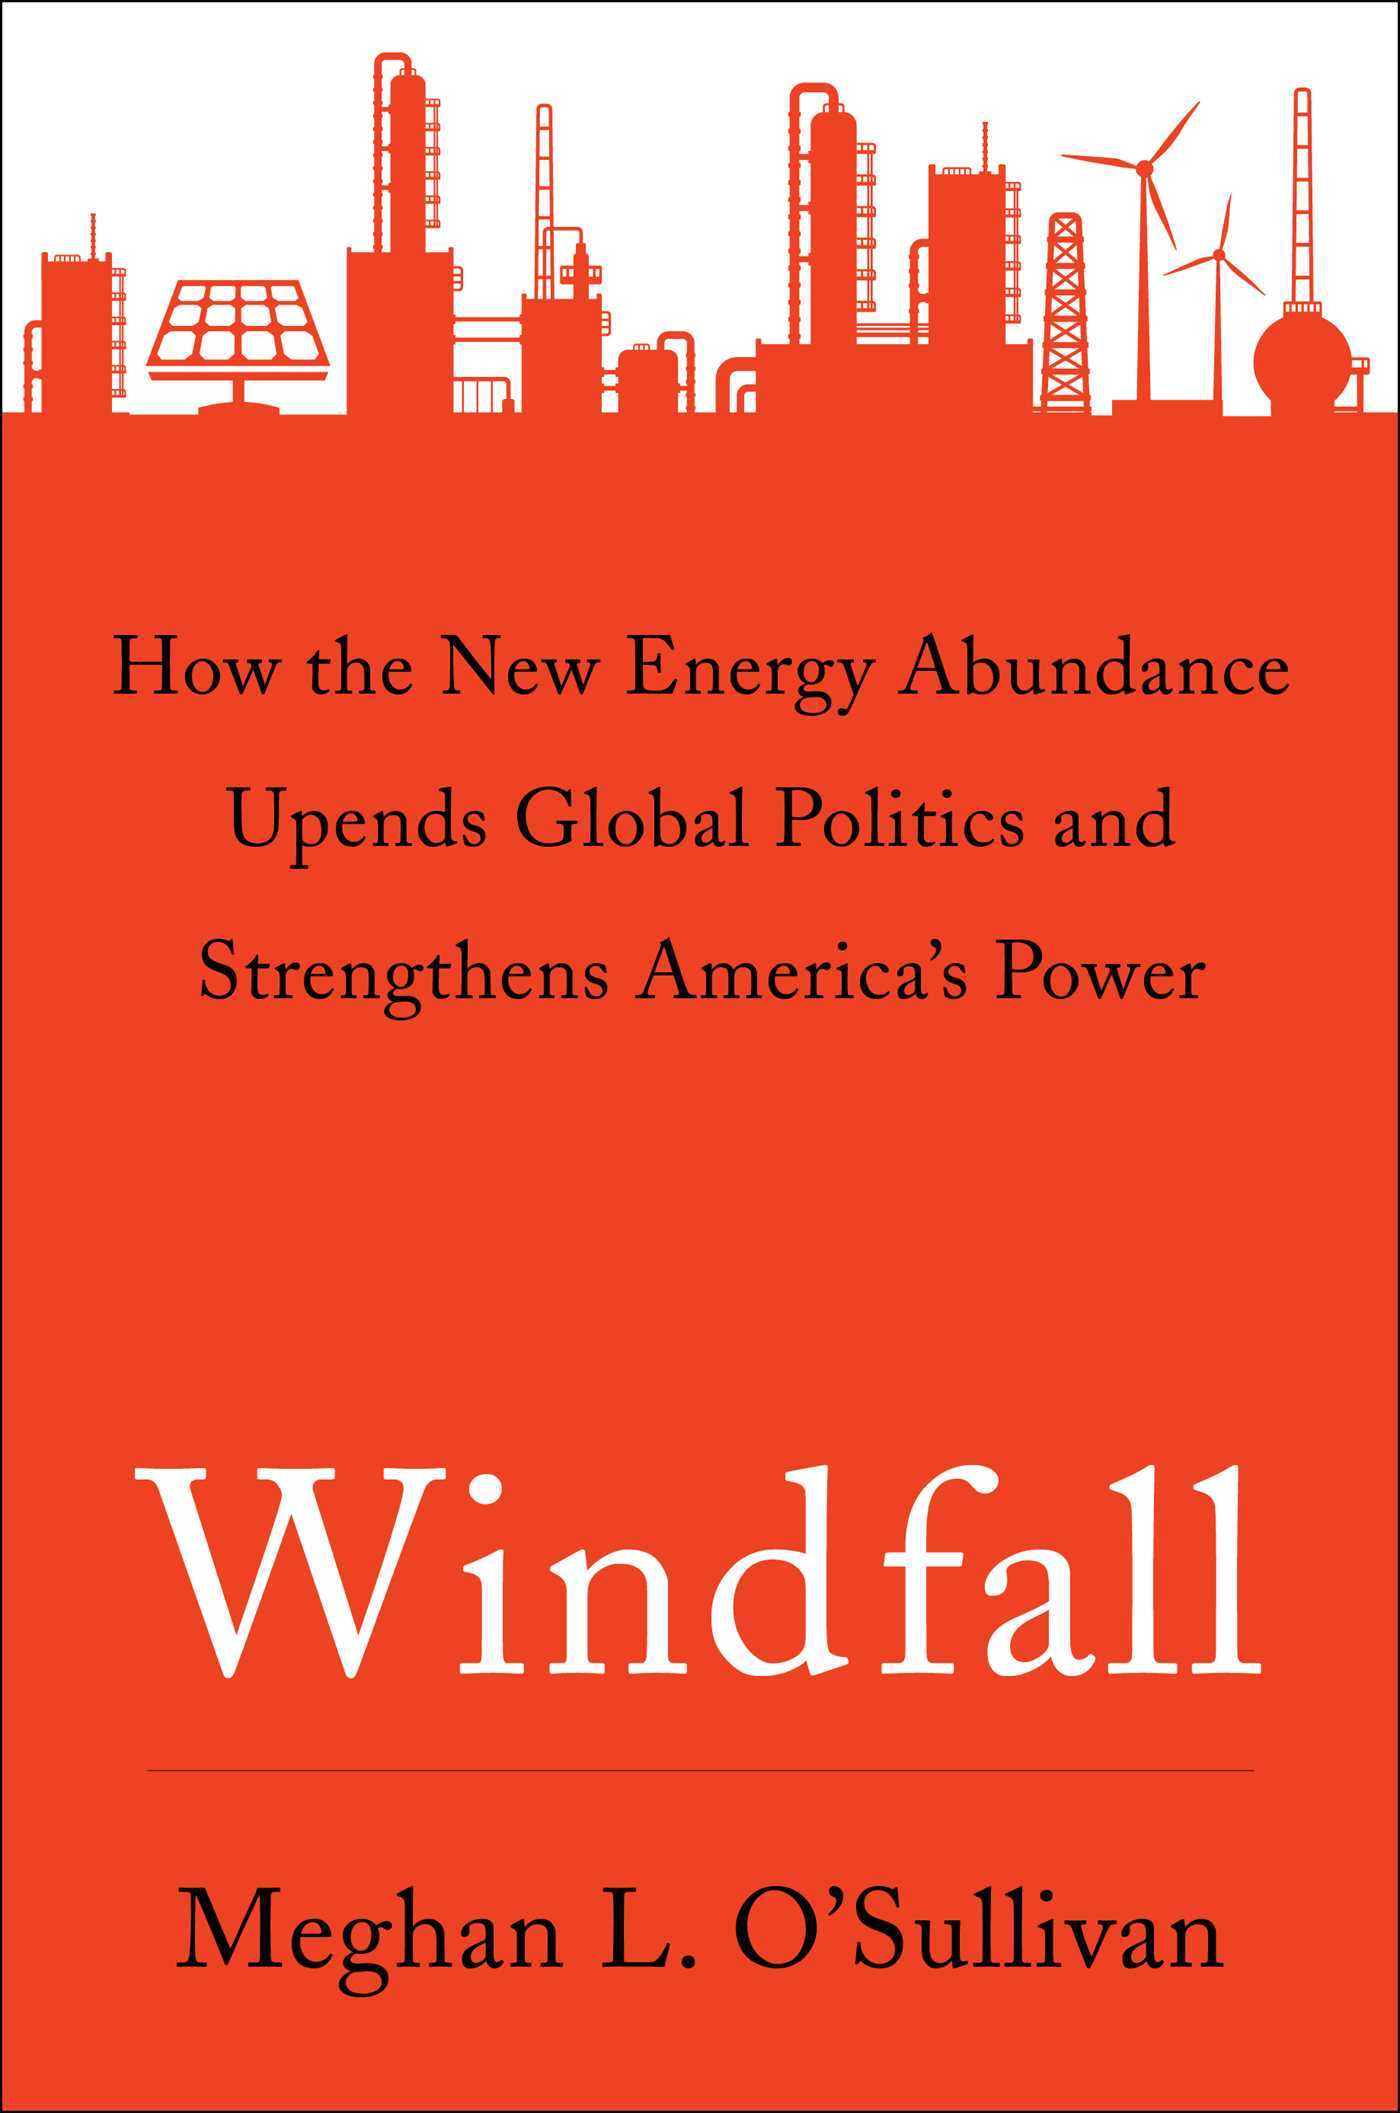 Windfall How the New Energy Abundance Upends Global Politics and Strengthens America's Power